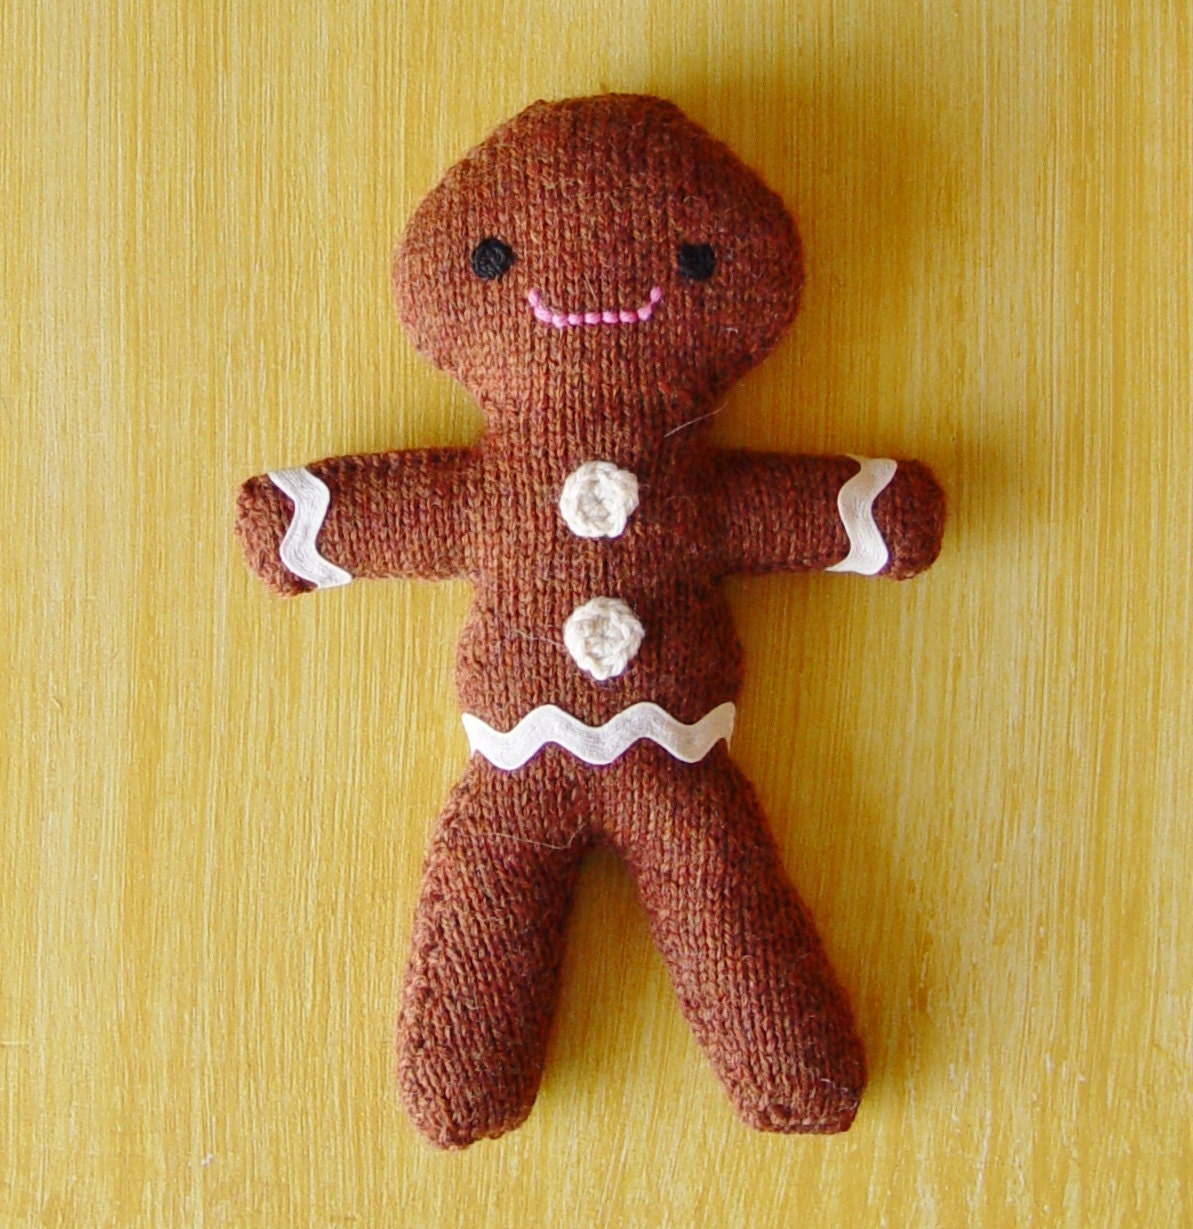 The Gingerbread Man knitting pattern PDF by Yarnigans on Etsy